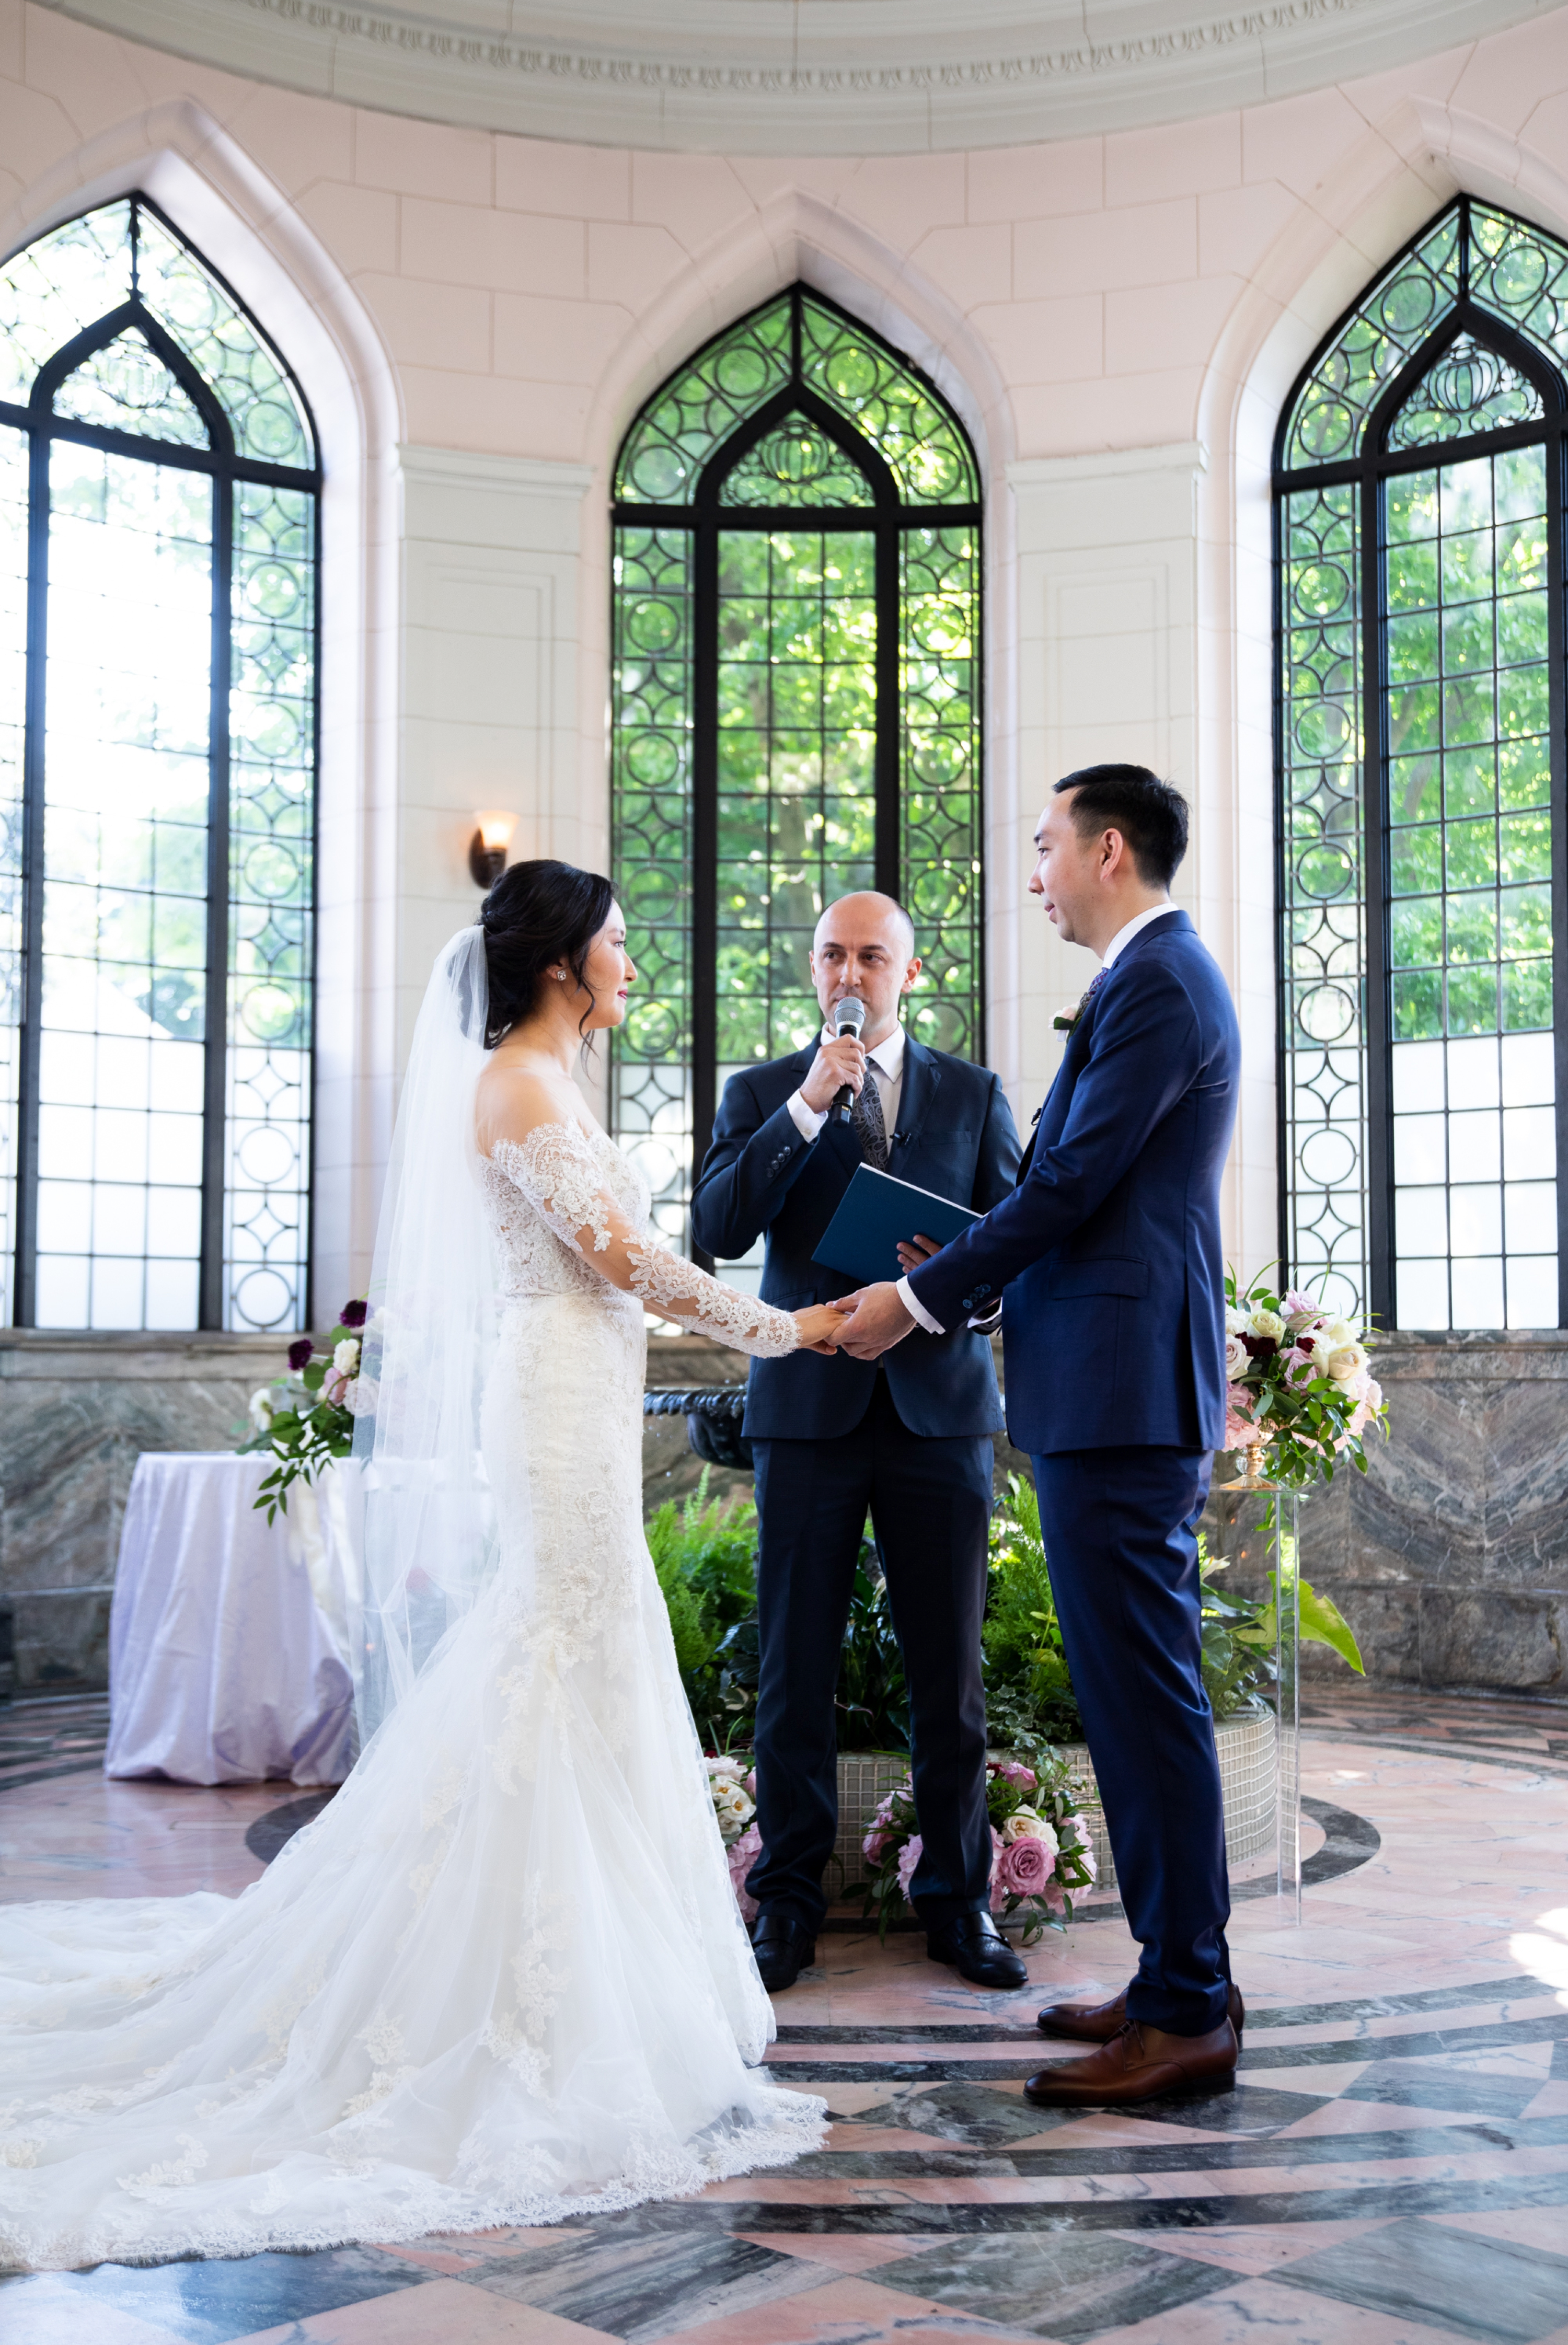 Lace Dress Pronovias Toronto Casa Loma Four Seasons Chinese Wedding Zsuzsi Pal Photography Cindy Brian